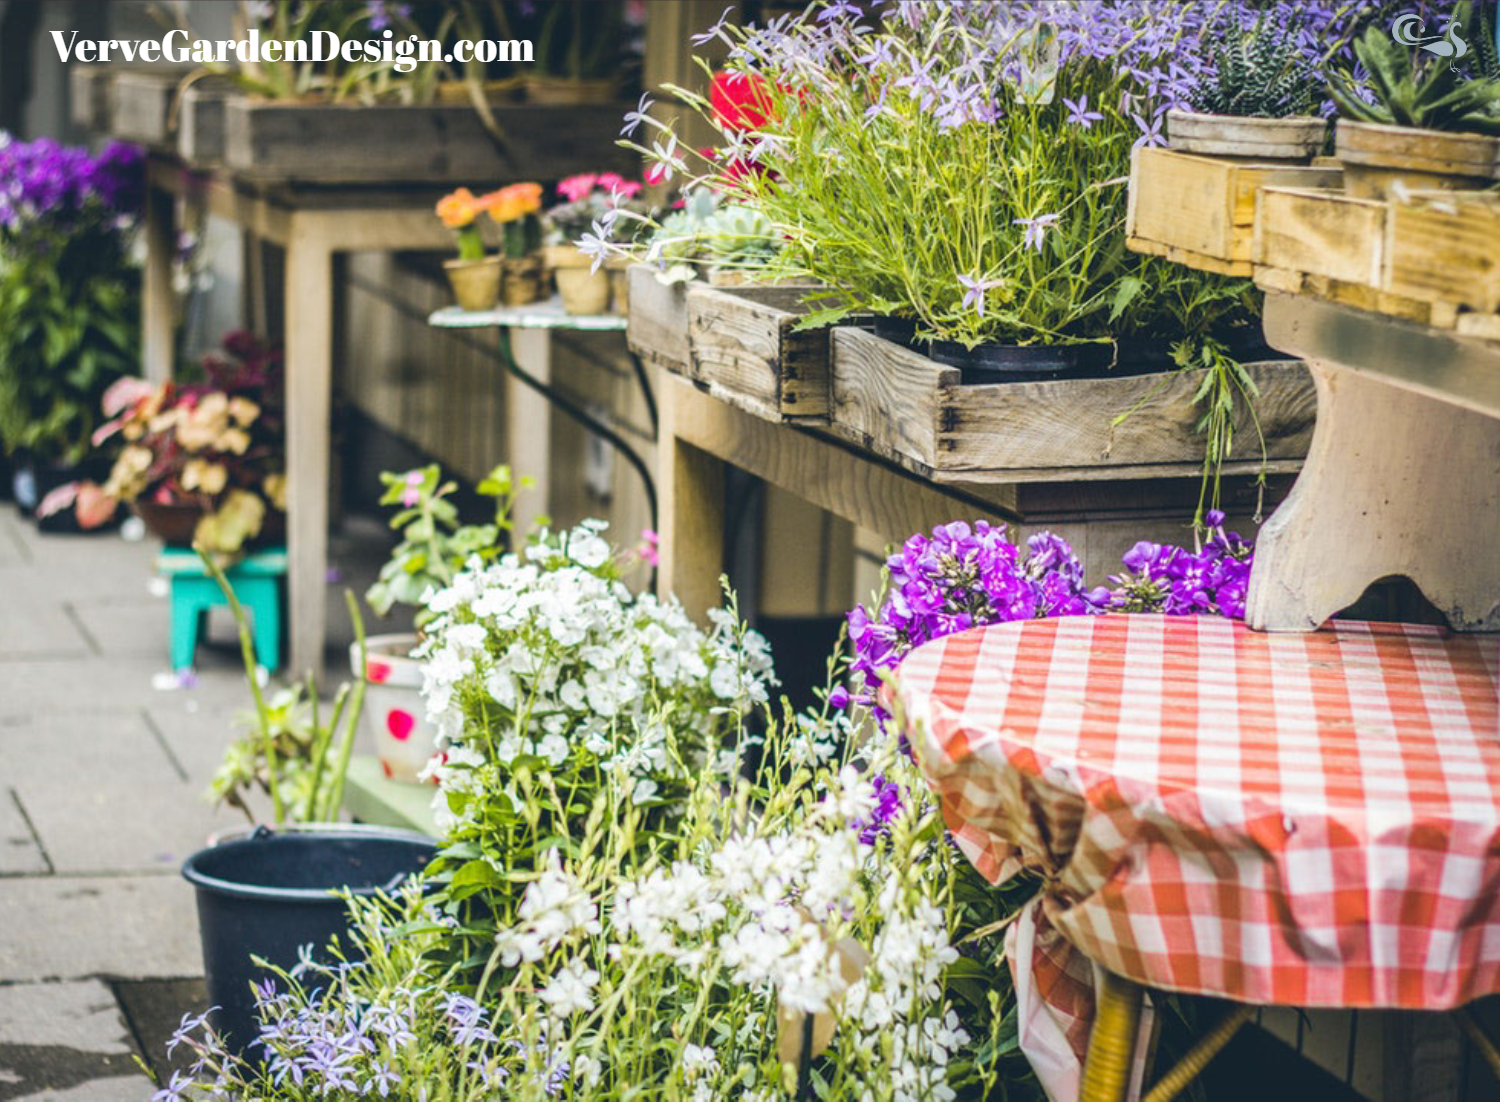 How do you decide which plants to buy for your garden?